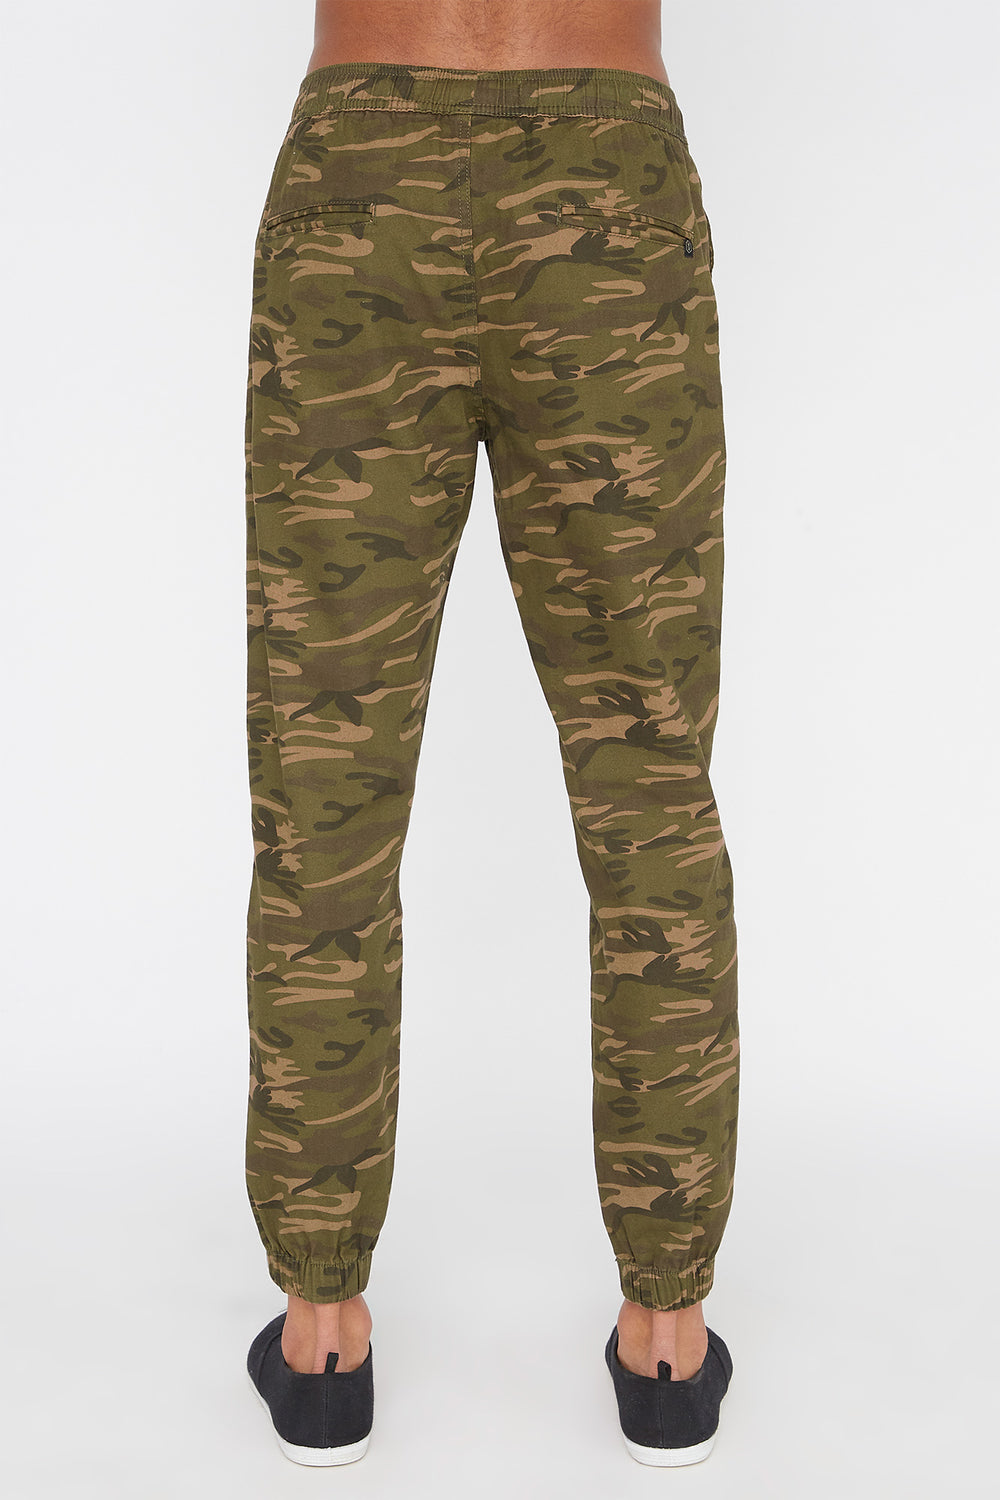 Jogger Camouflage West49 Homme Camoufle